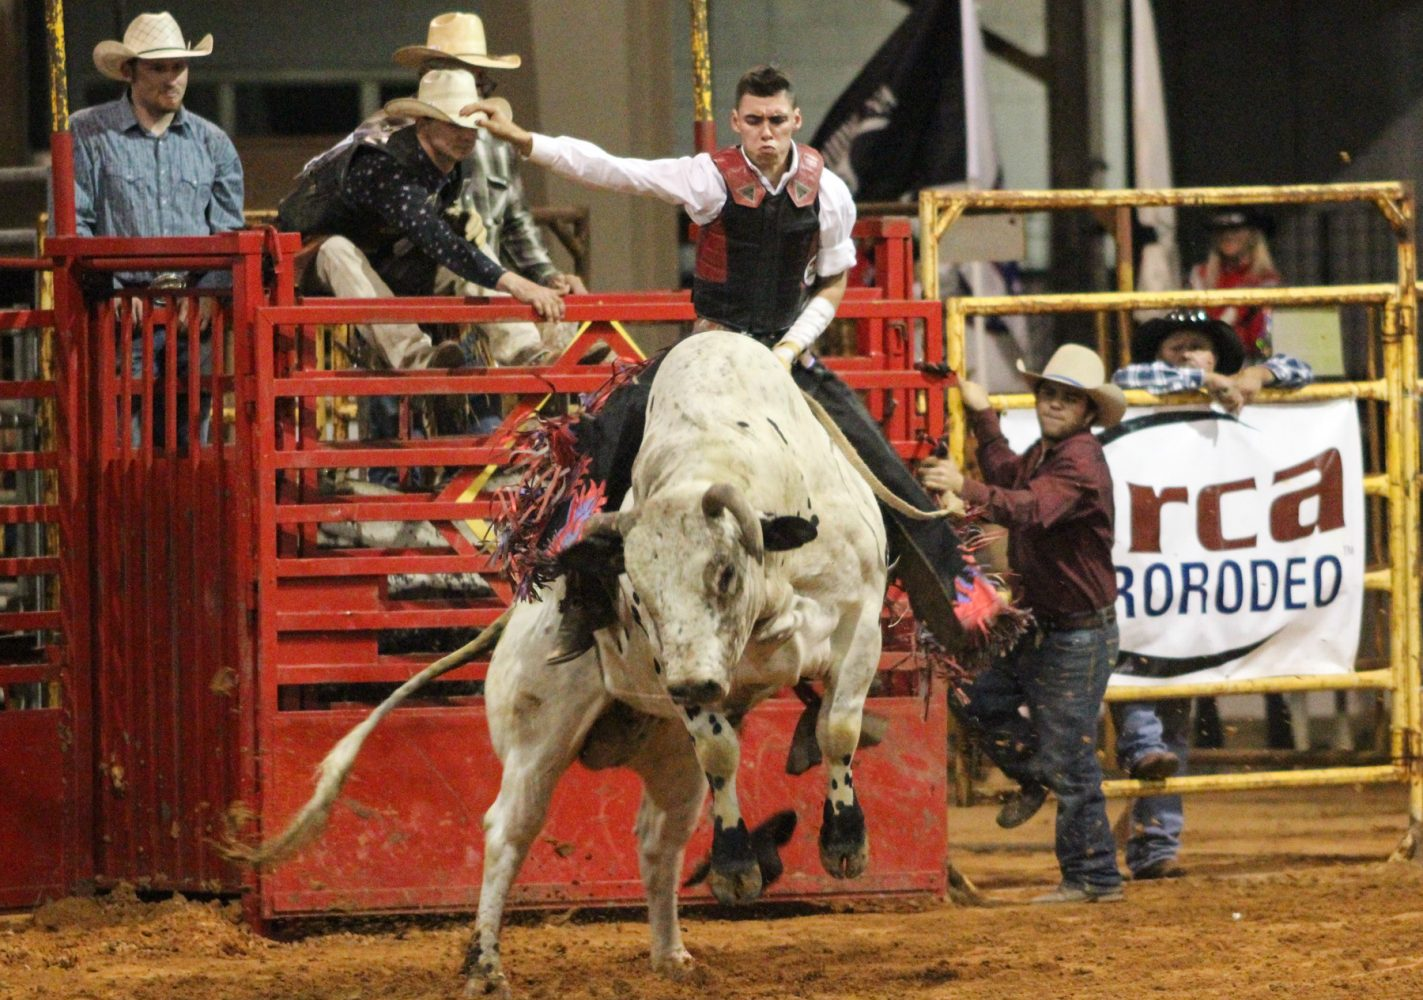 Hollywood Flores of Weirsdale, Fla. rides bull Banana Twist at the Ocala Pro Rodeo on Saturday night, March 22, 2014.